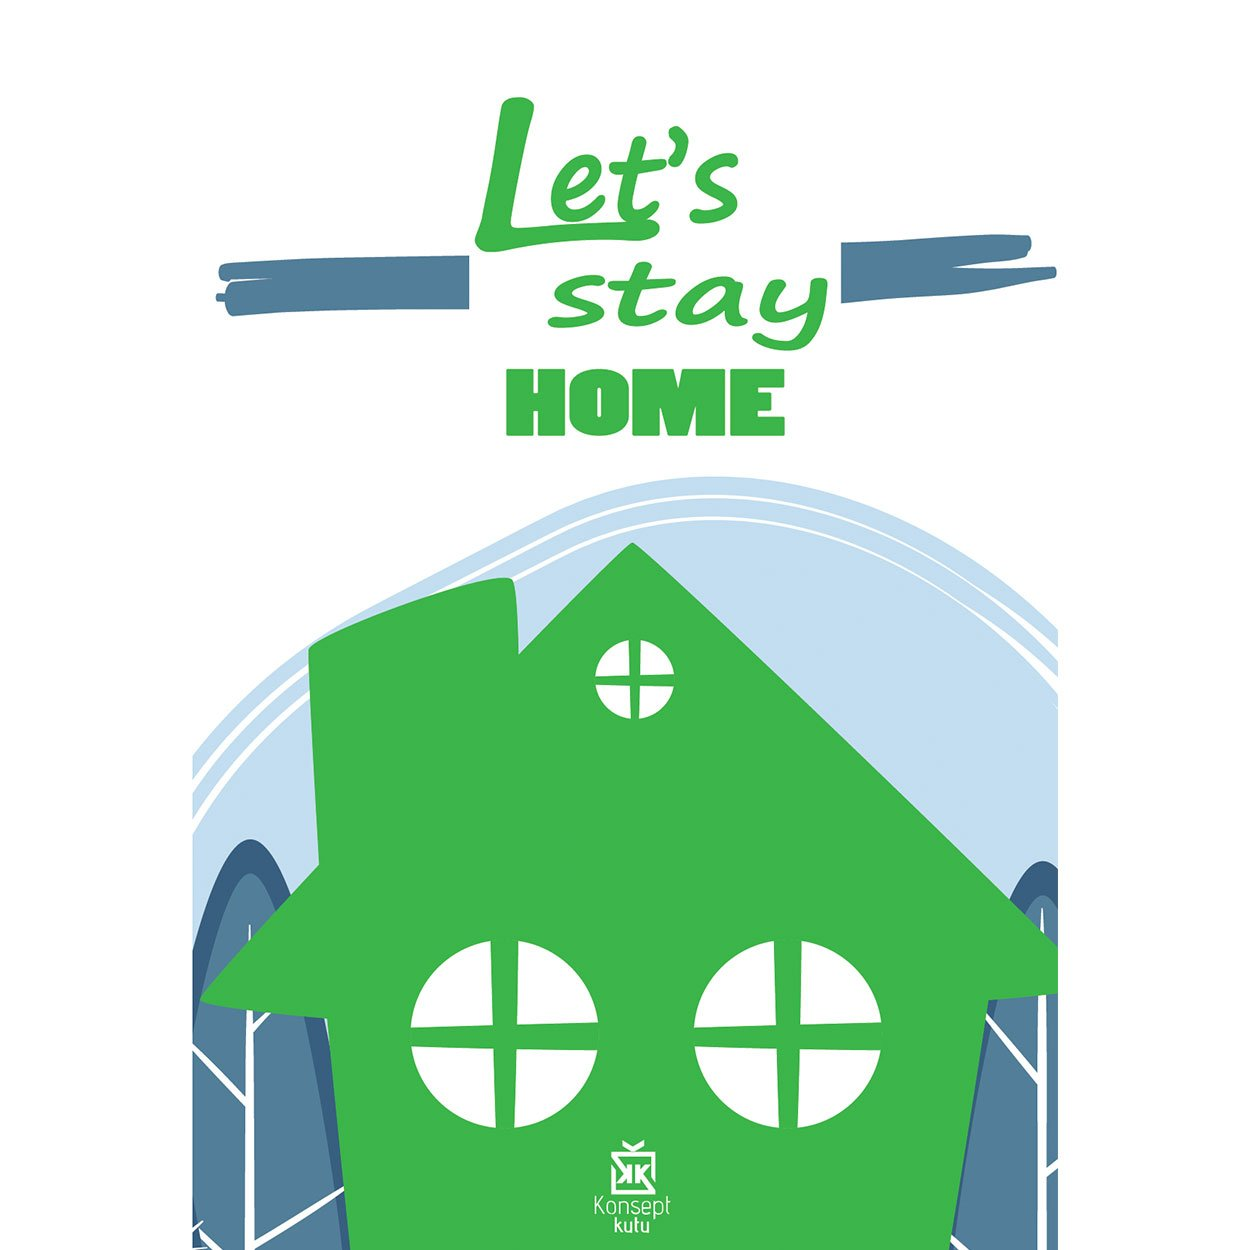 390376-let-s-stay-home-motto-karti